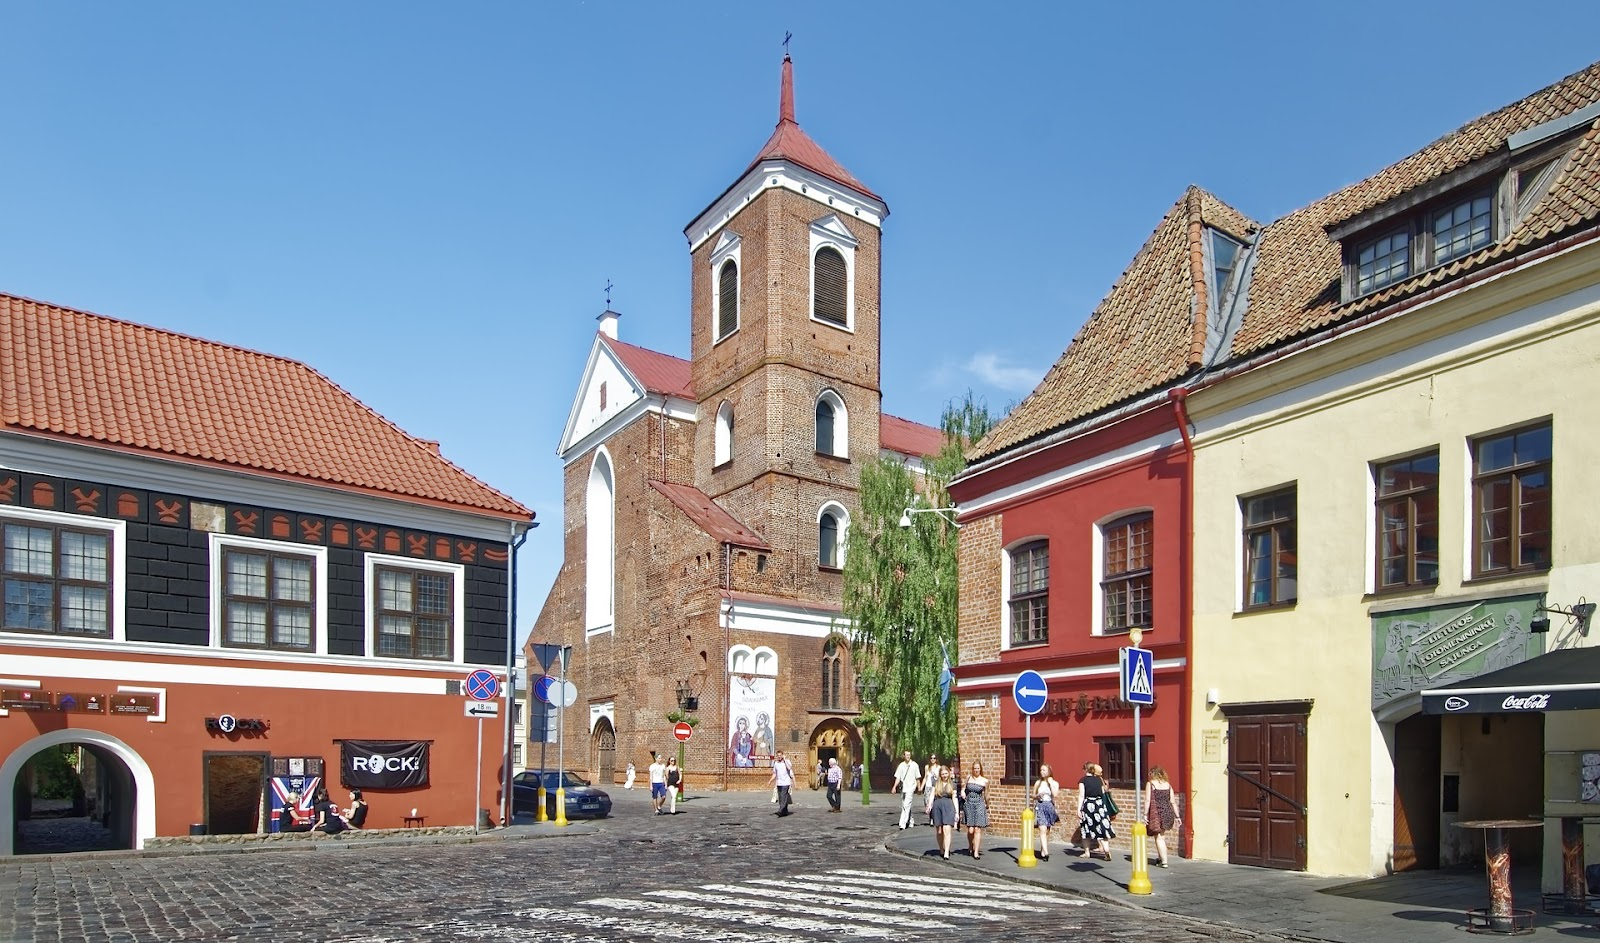 old town kaunas, traditional architecture and large brick church in the middle of the frame. tourists walking around on this sunny day in lithuania